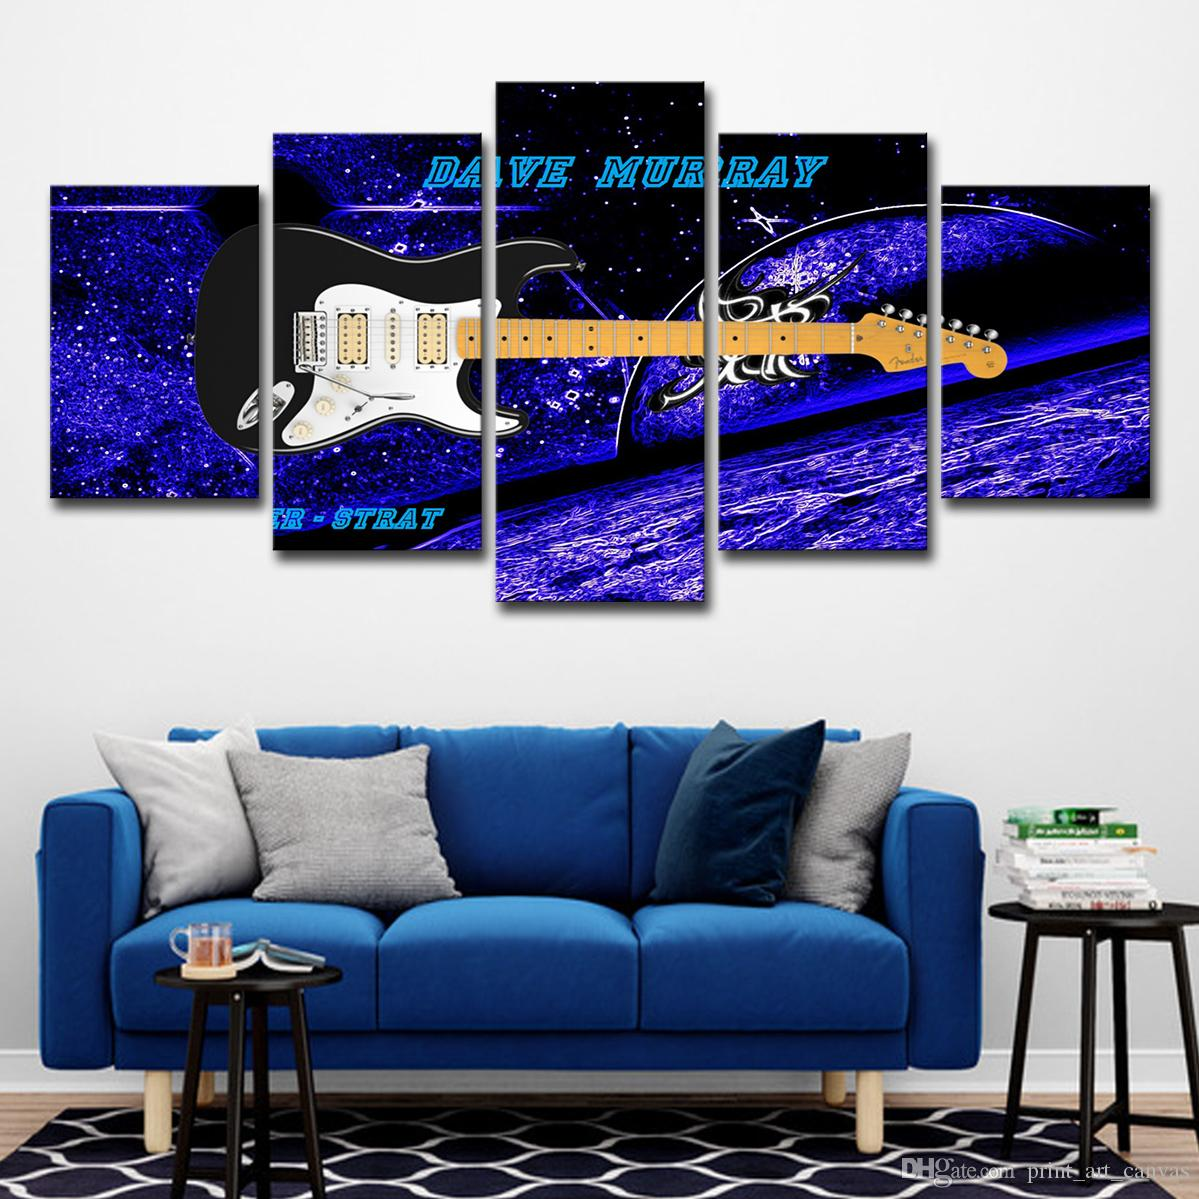 guitar wall decor.htm 2020 hd printed canvas art abstract guitar painting blue wall  2020 hd printed canvas art abstract